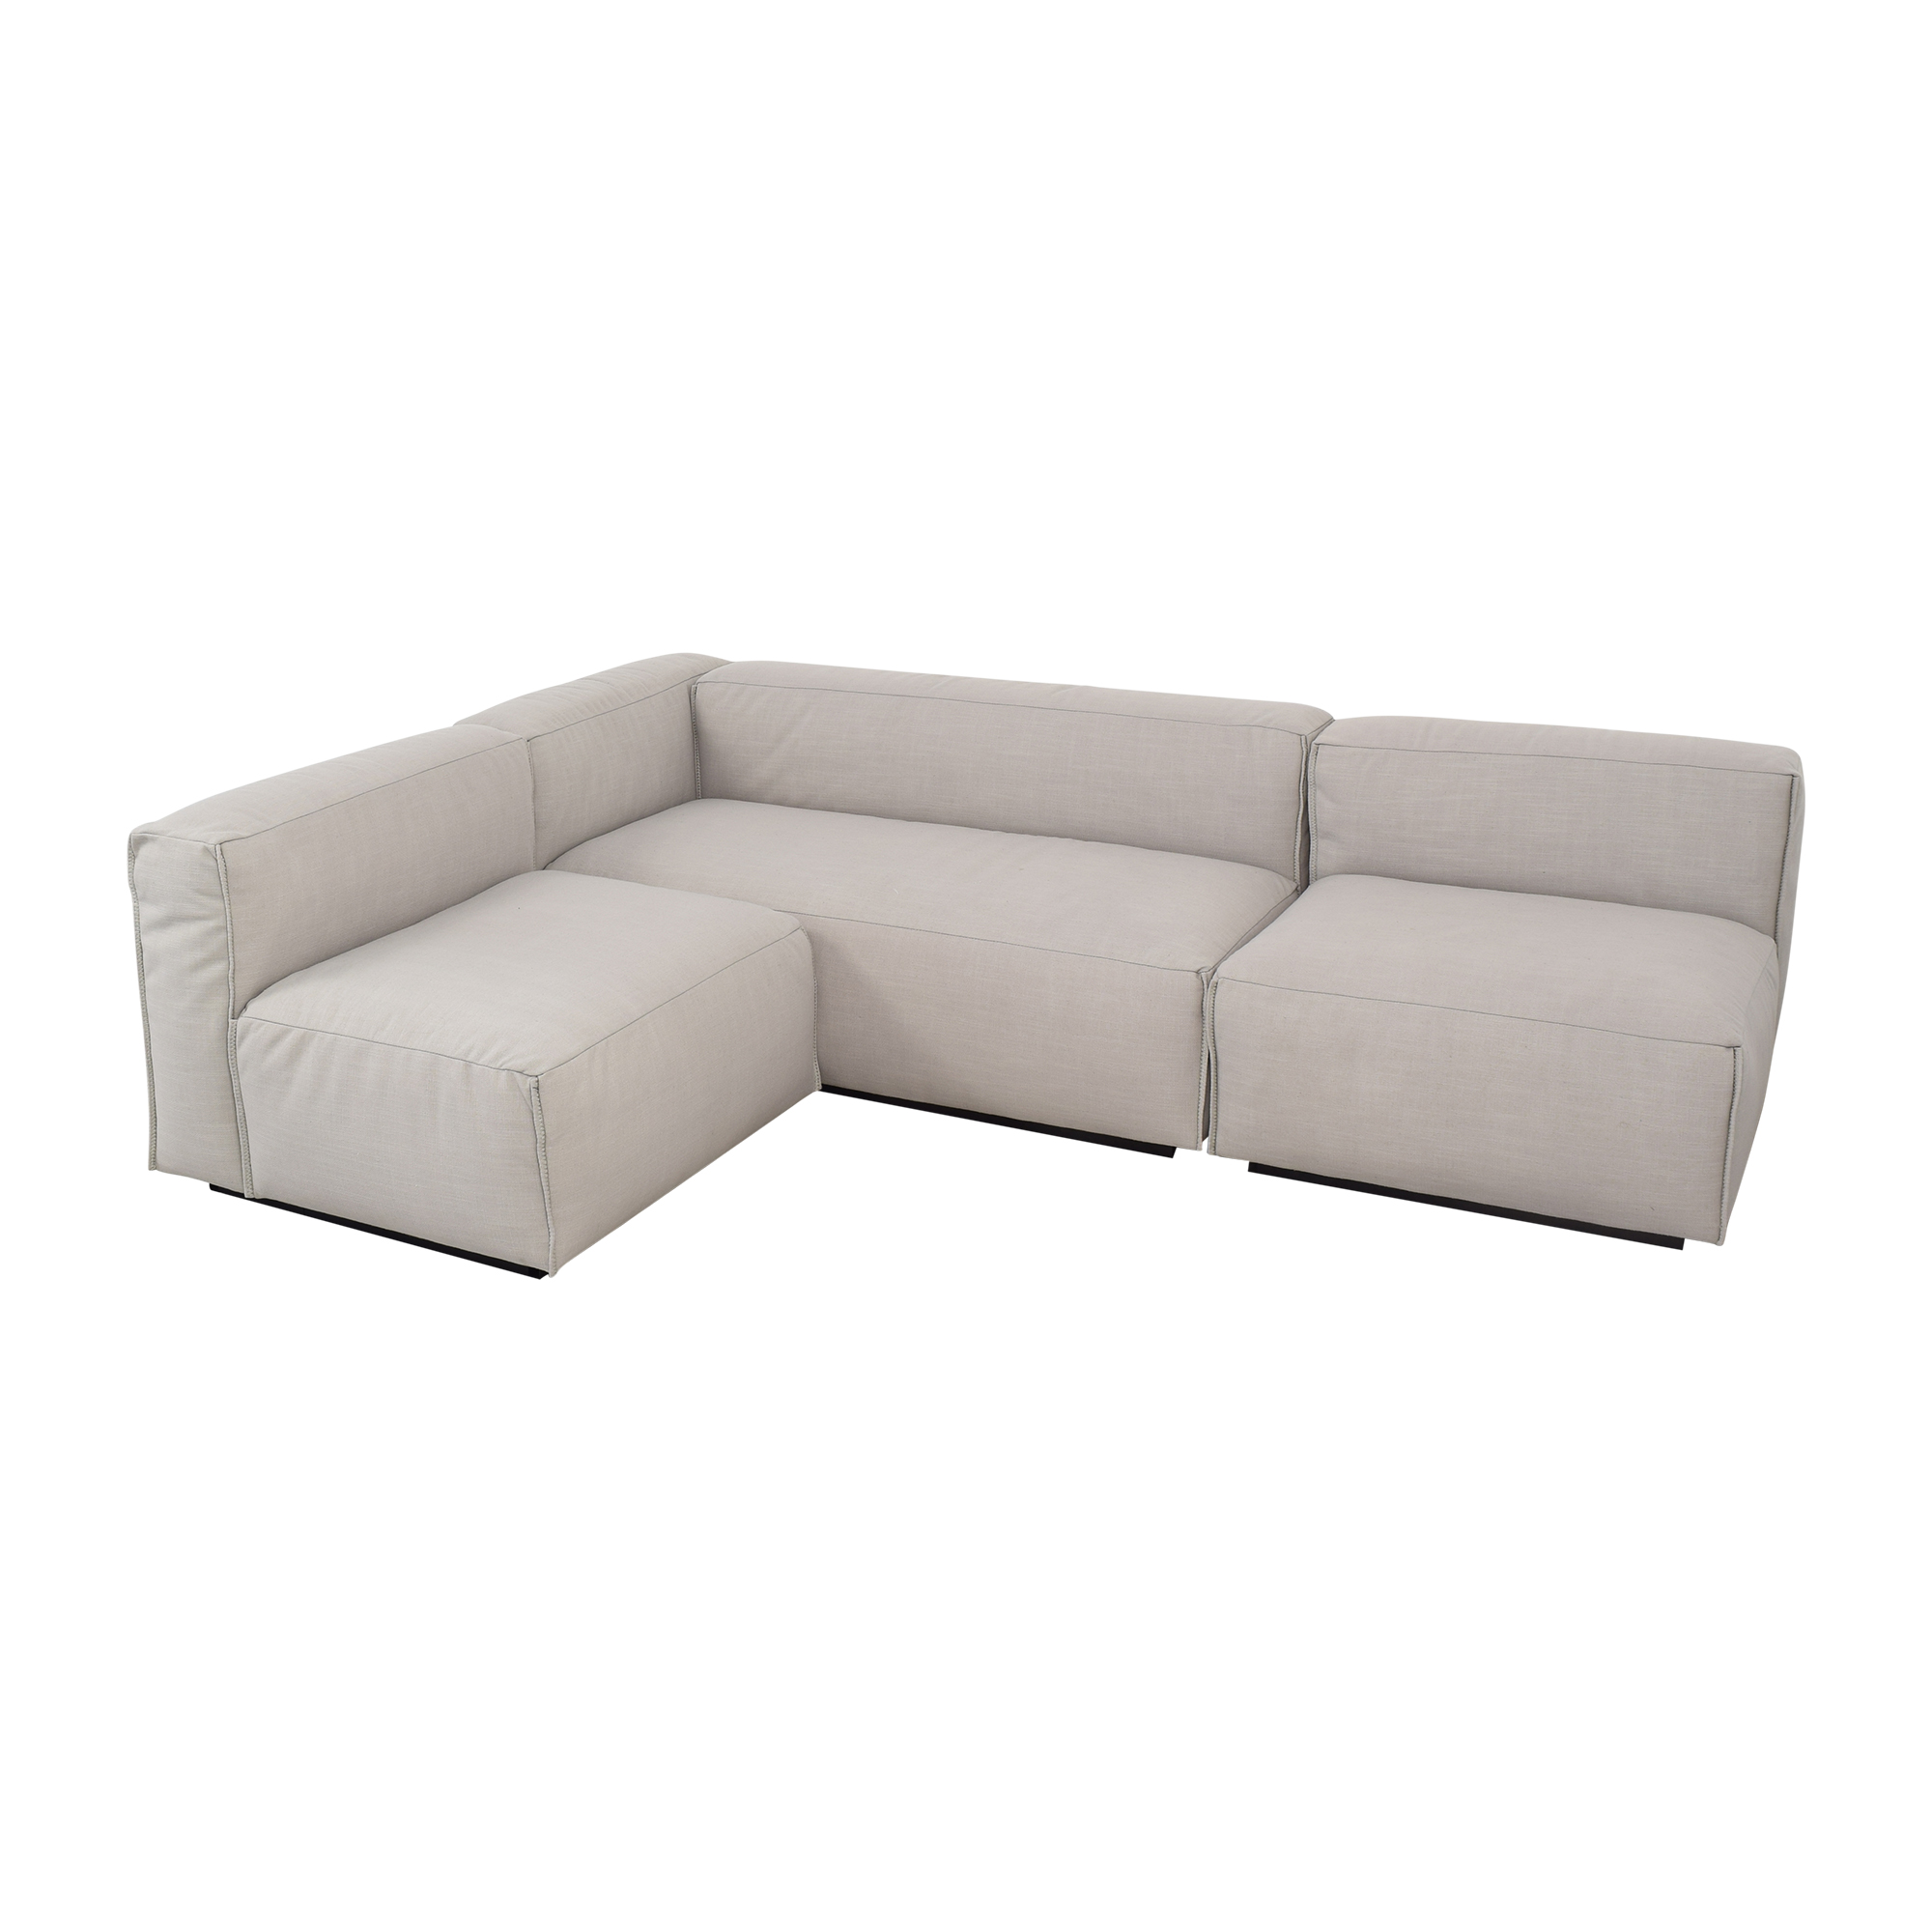 Blu Dot Cleon Medium Sectional Sofa Blu Dot